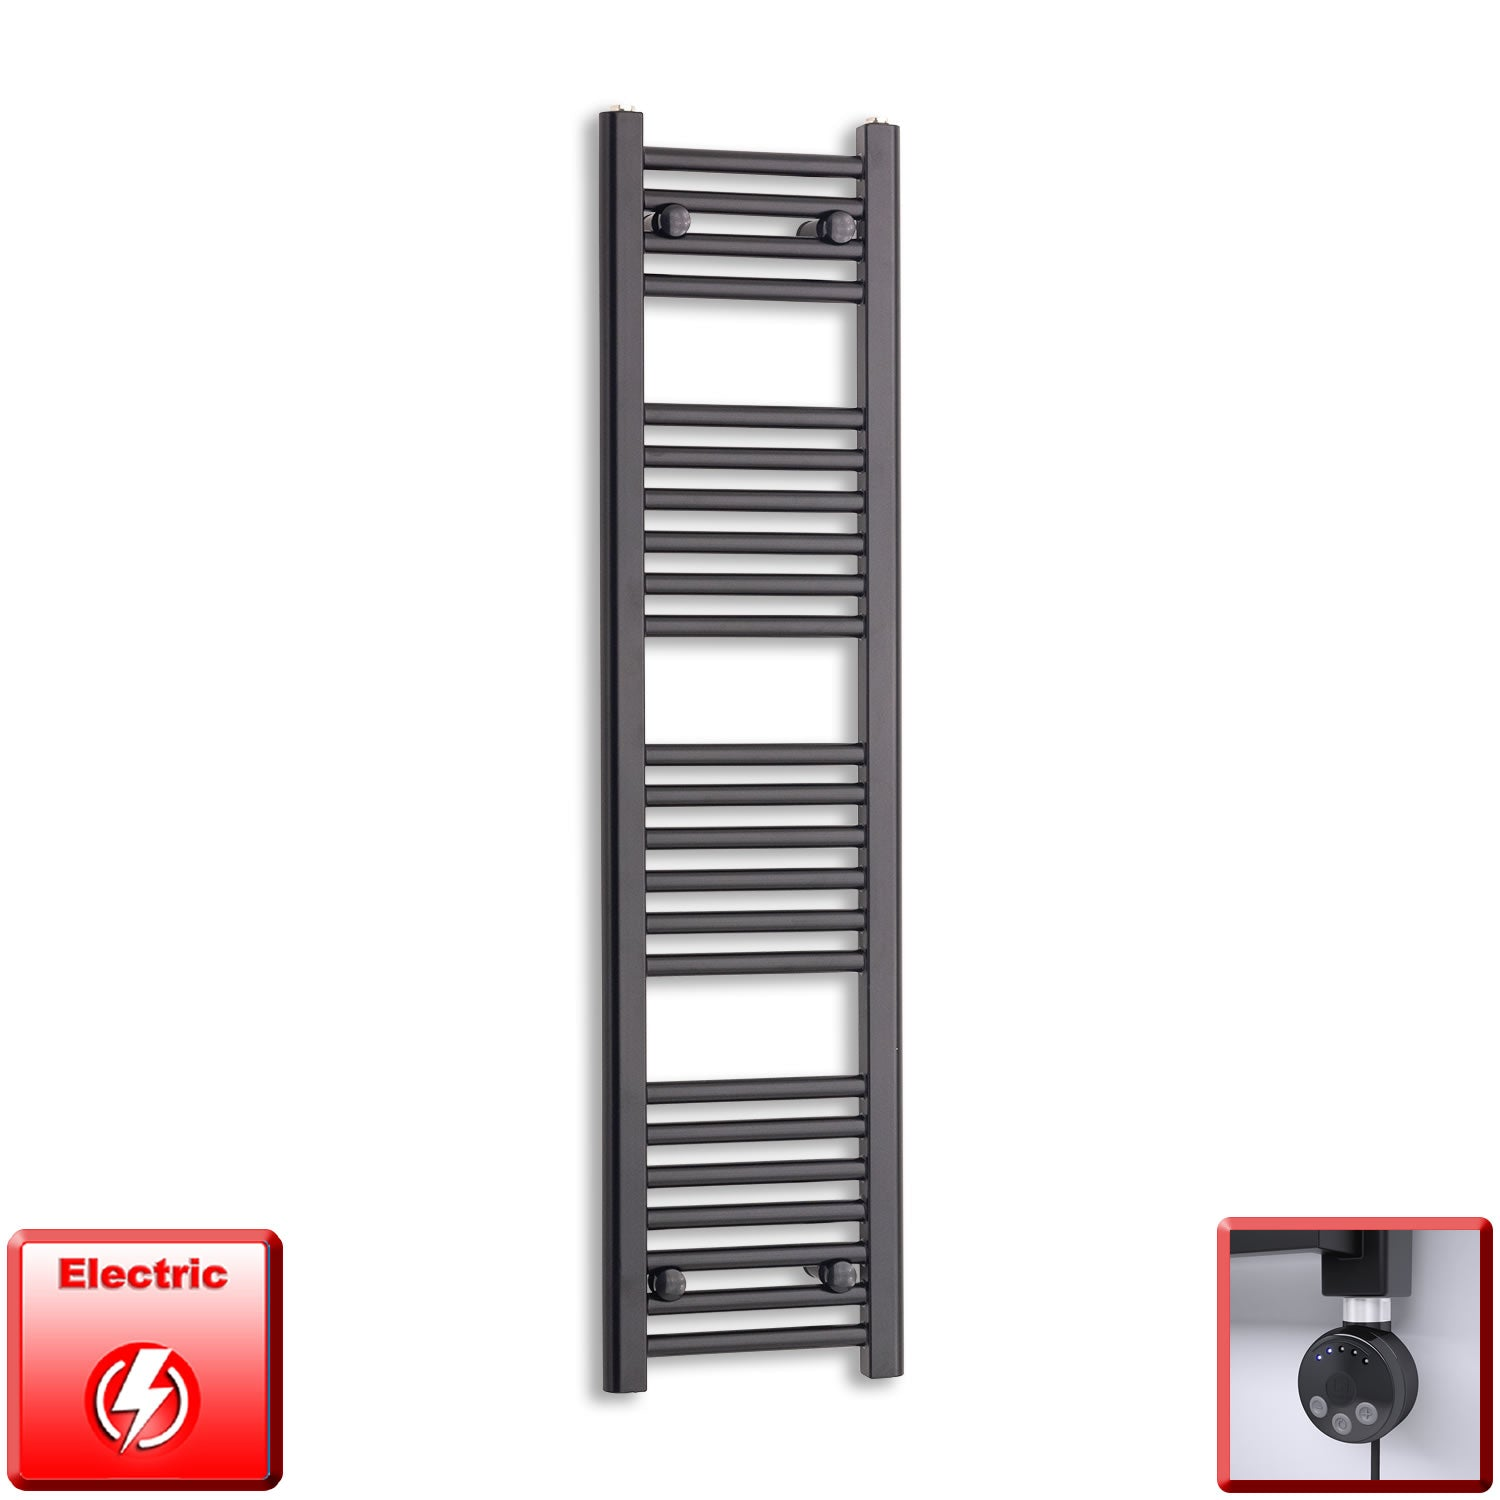 300mm Wide 1200mm High Pre-Filled Black Electric Towel Rail Radiator With Thermostatic MEG Element